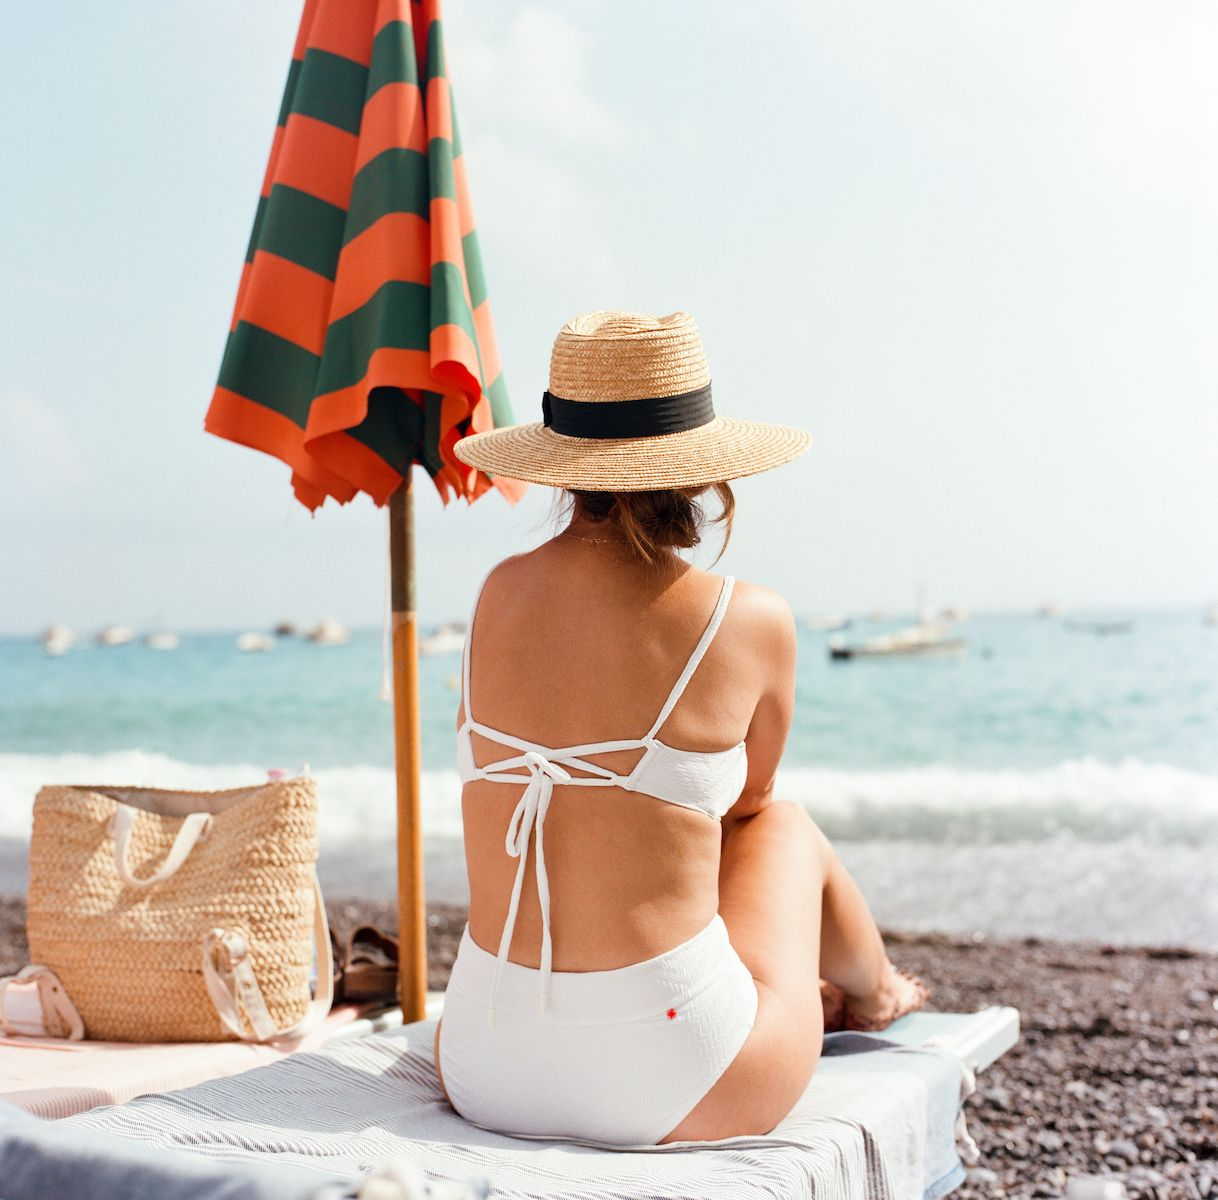 Aaron Snow Photography Italy Wedding Photographer Positano Beach Hasselblad Camera Girl Sunhat Umbrella White Bikini